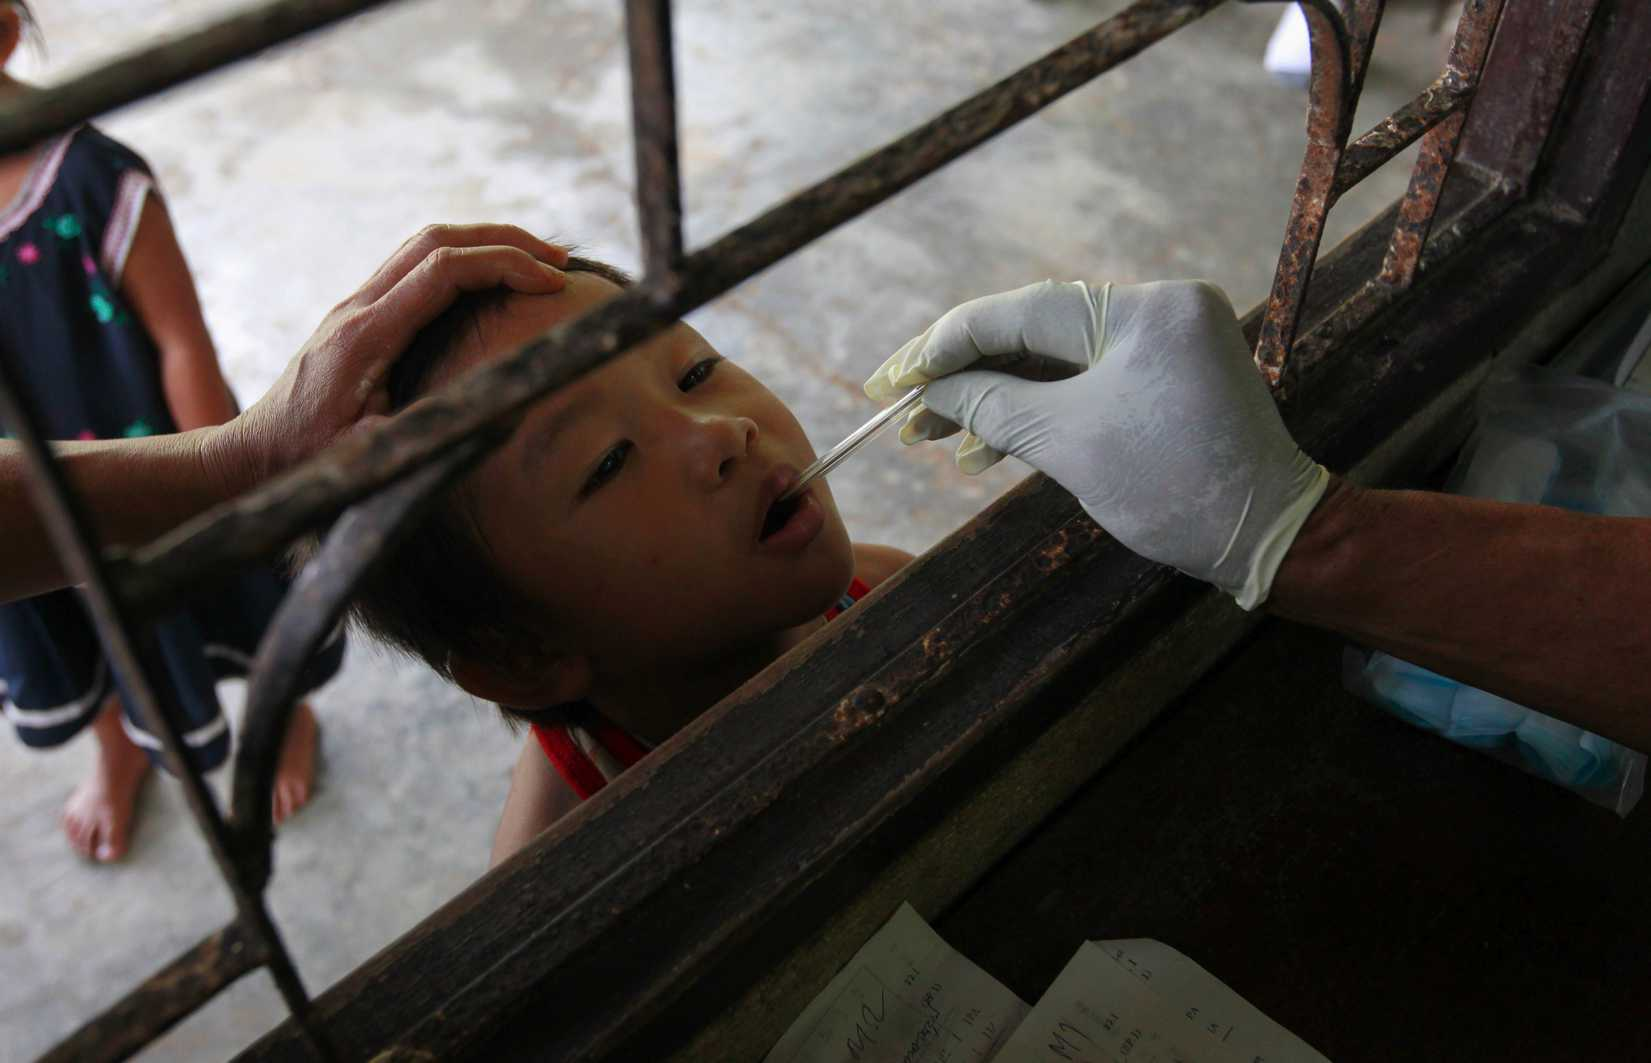 A Thai public-health official places a thermometer into a child's mouth at a malaria clinic in Sai Yoke district, Kanchanaburi province, Thailand, on Oct. 26, 2012